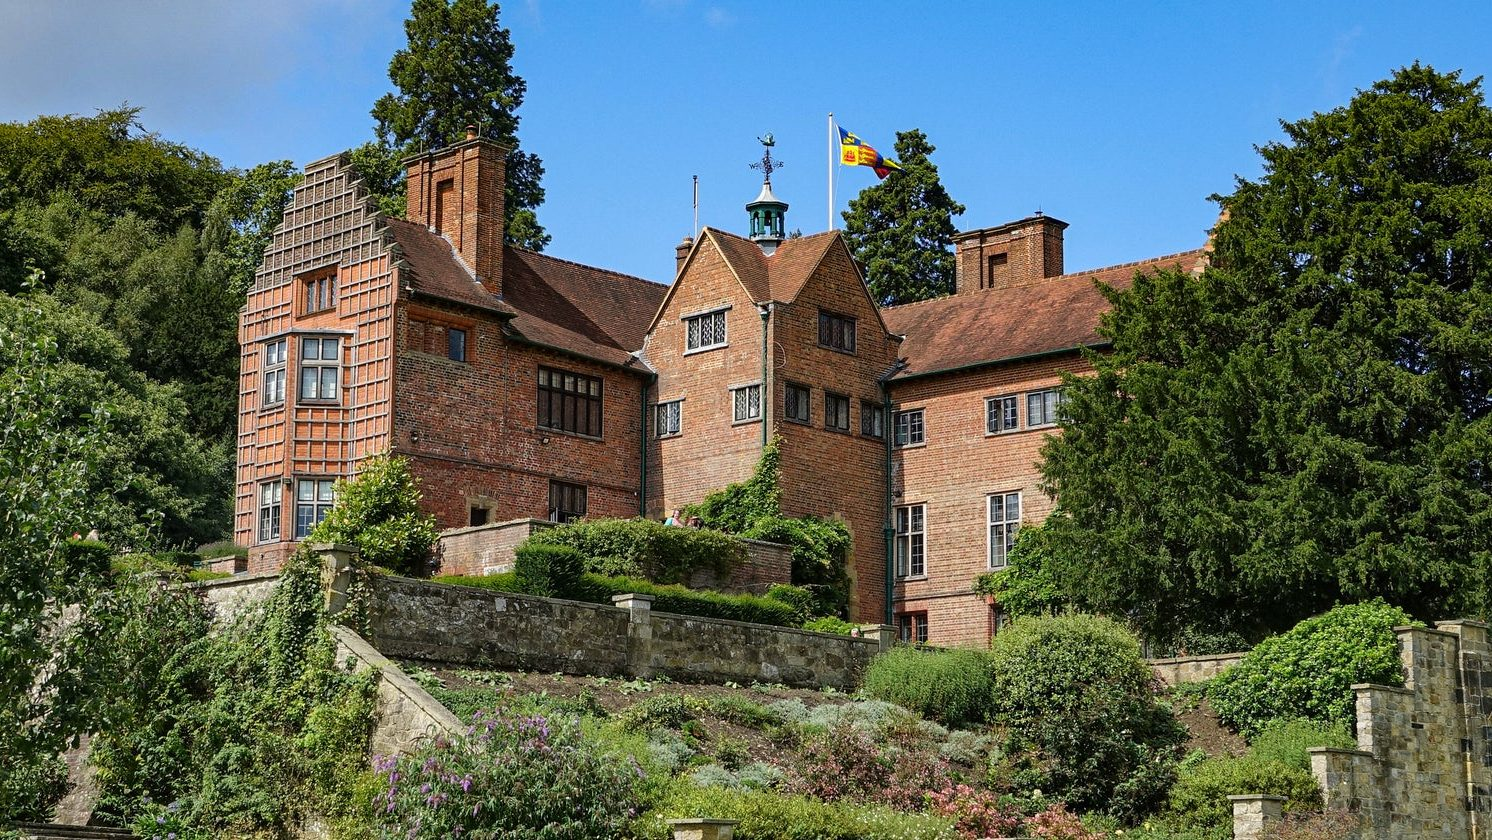 The inclusion of Winston Churchill's home Chartwell in the National Trust report caused particular controversy